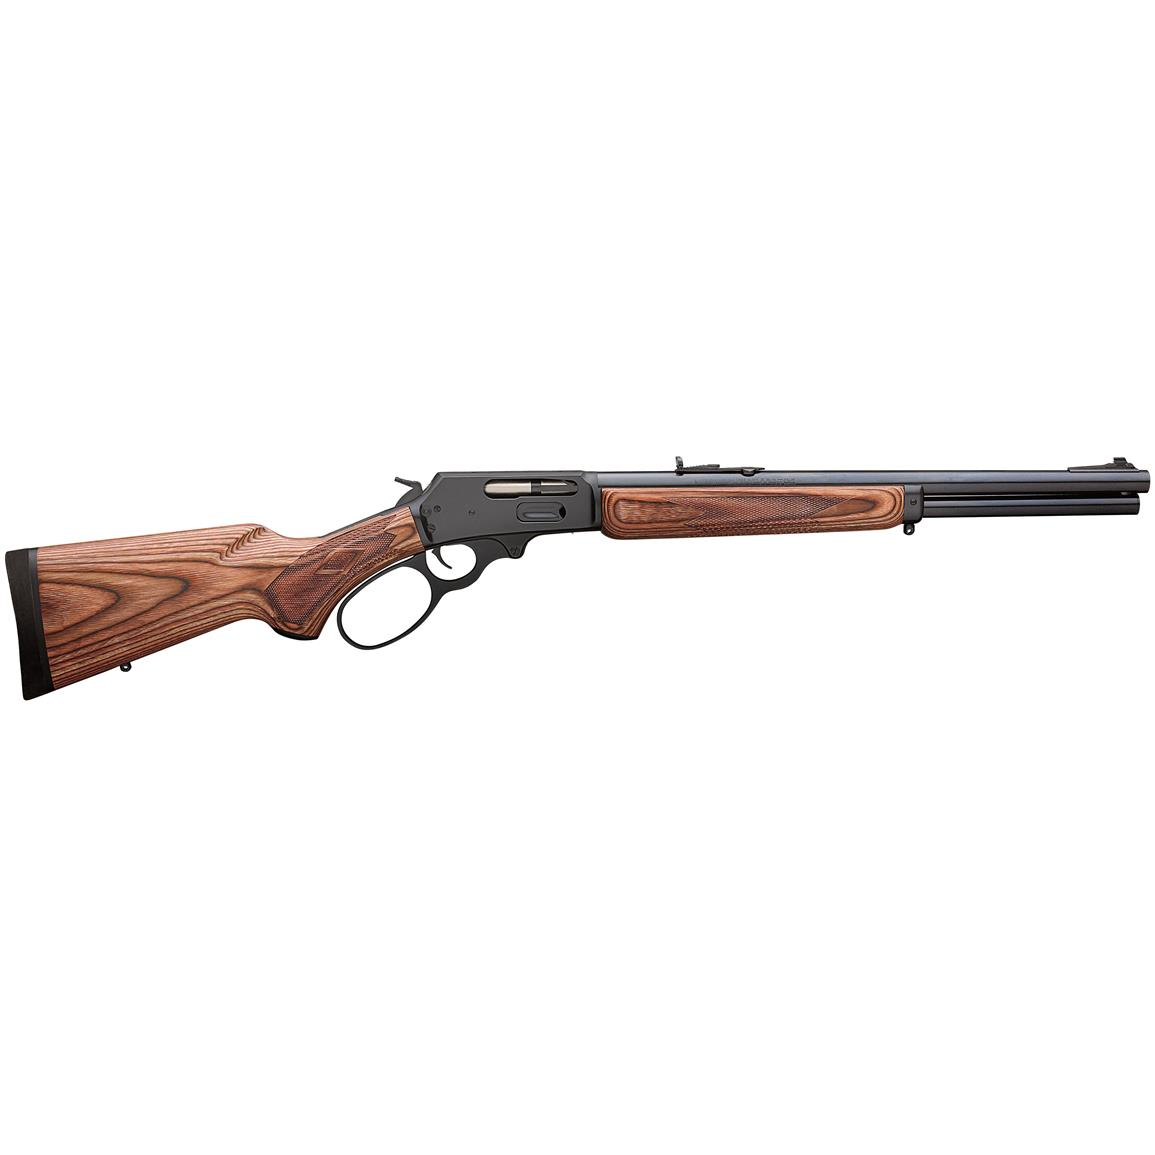 Marlin 1895 GBL, Lever Action, .45-70 Govt., Centerfire, 70456, 026495704568, 18.5